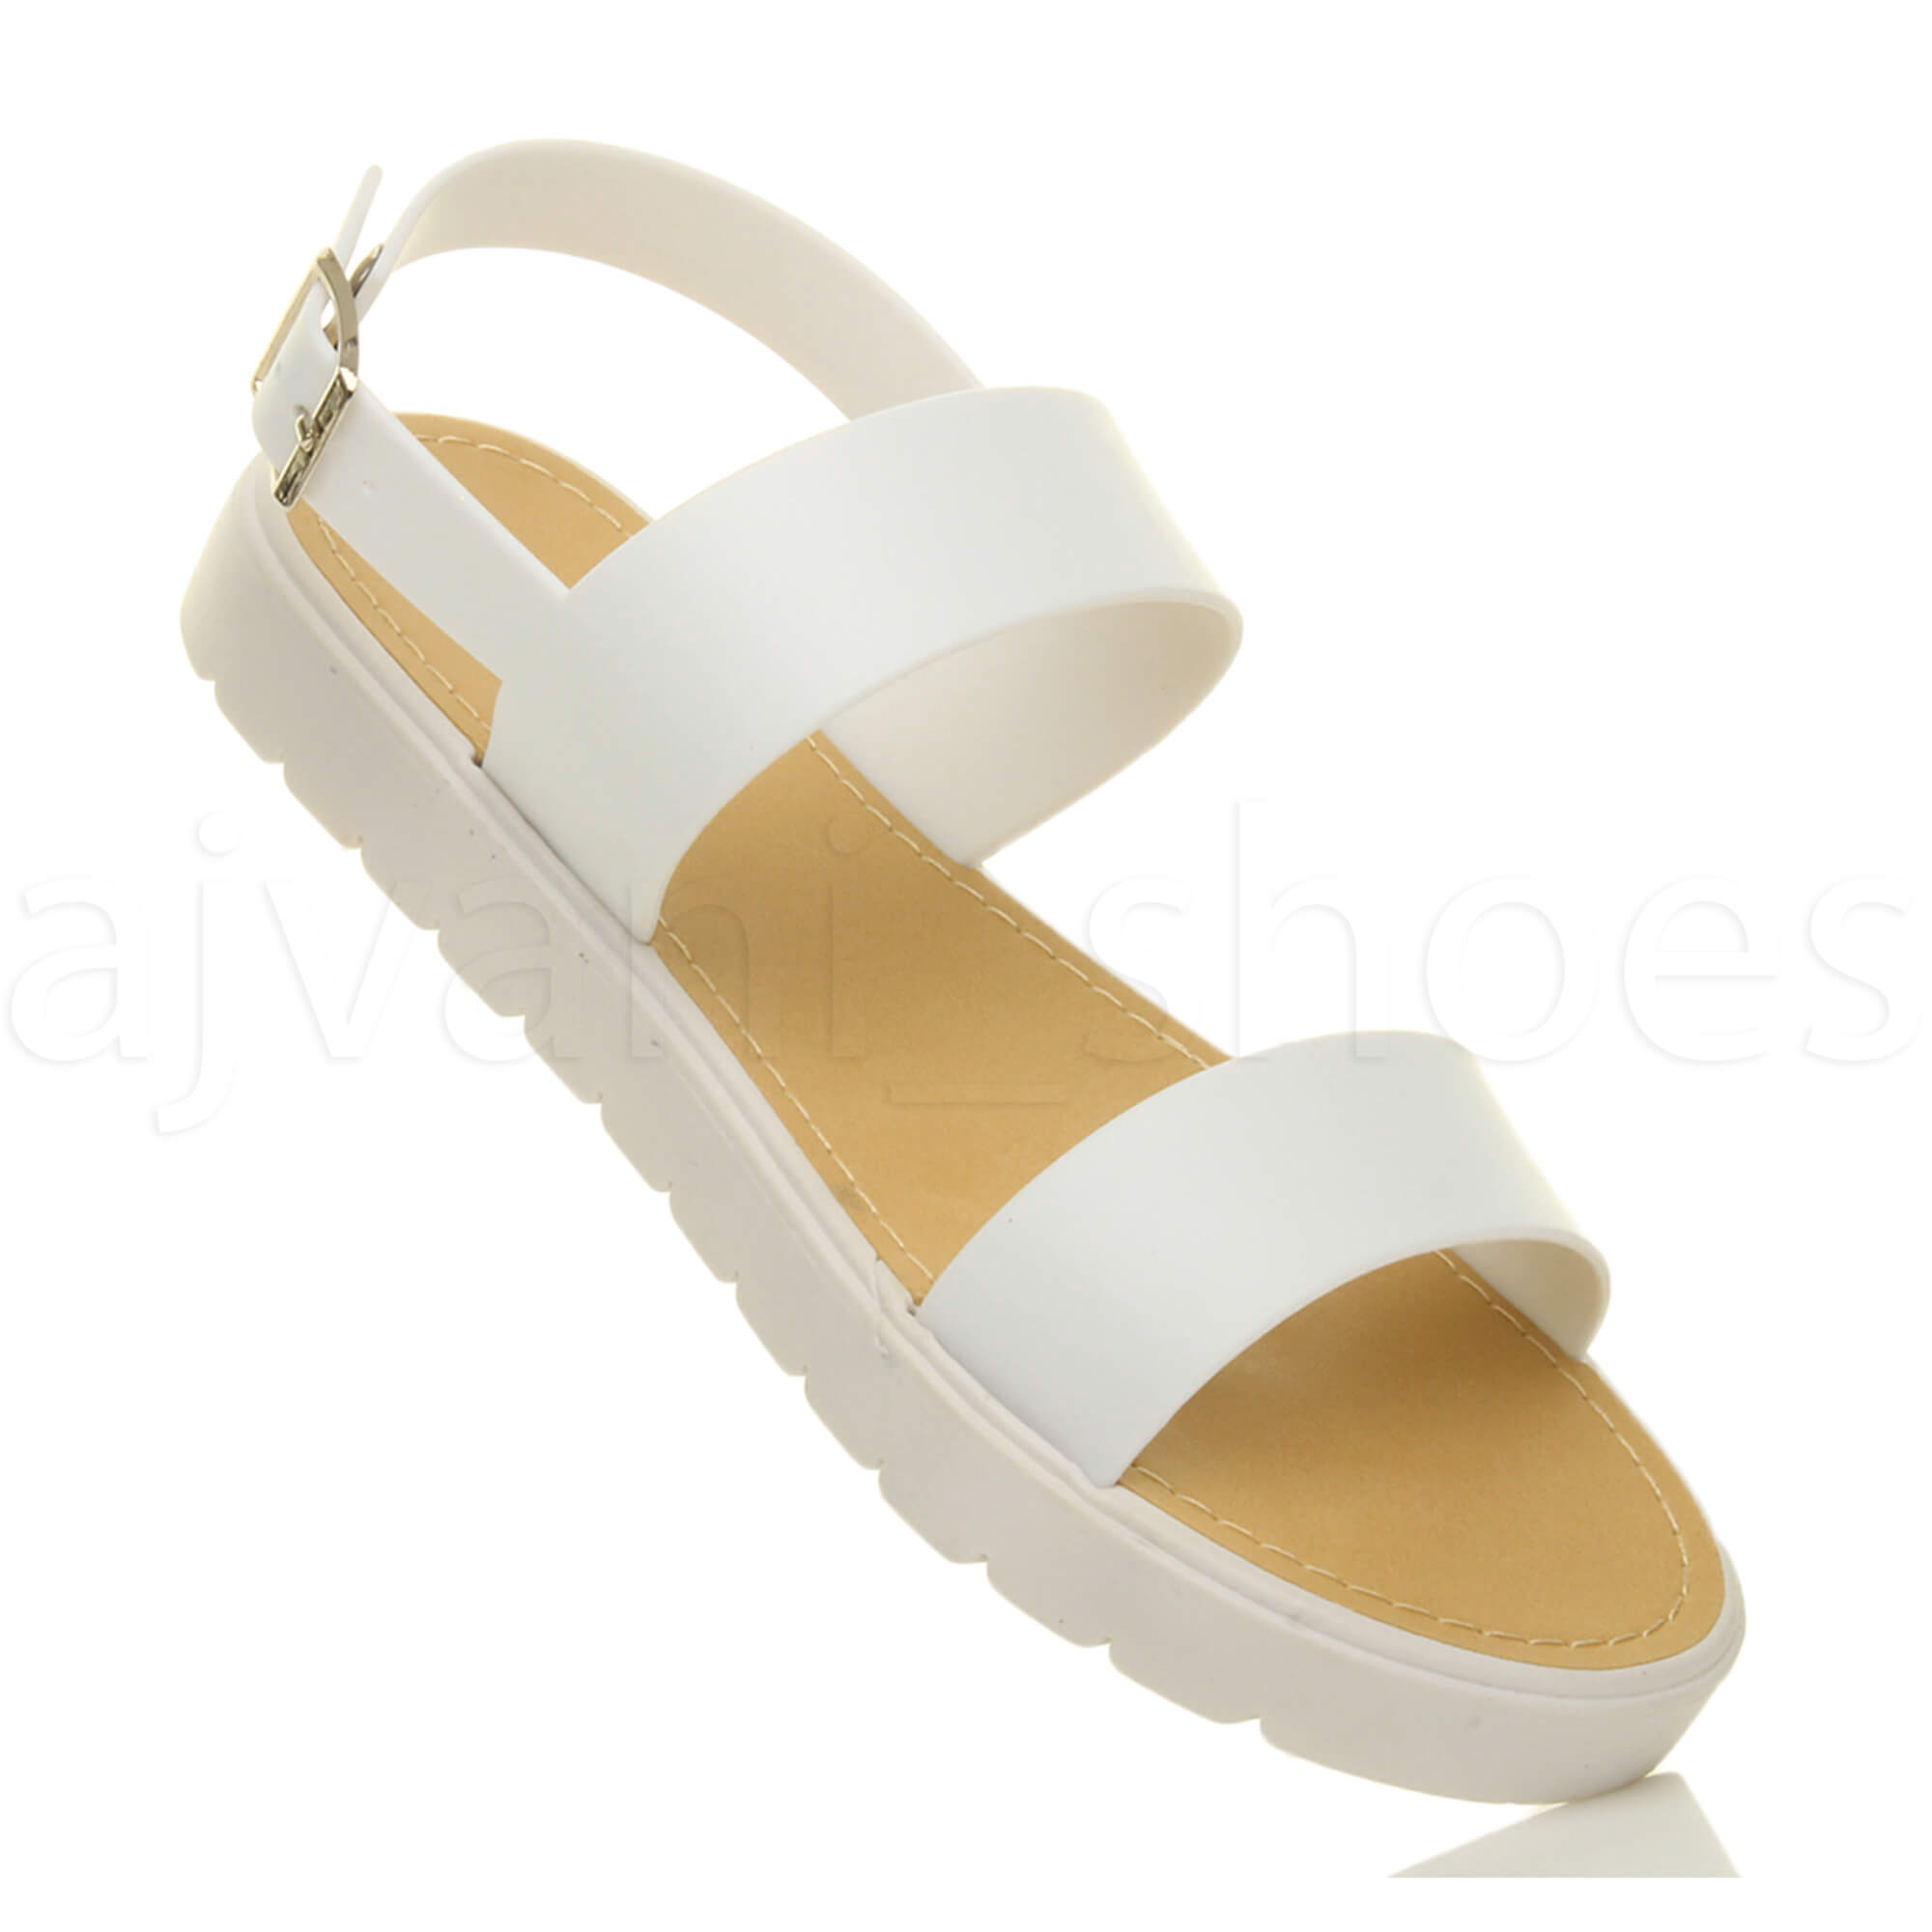 WOMENS-LADIES-FLAT-STRAPPY-BUCKLE-SLINGBACK-CLEATED-RUBBER-SUMMER-SANDALS-SIZE thumbnail 14